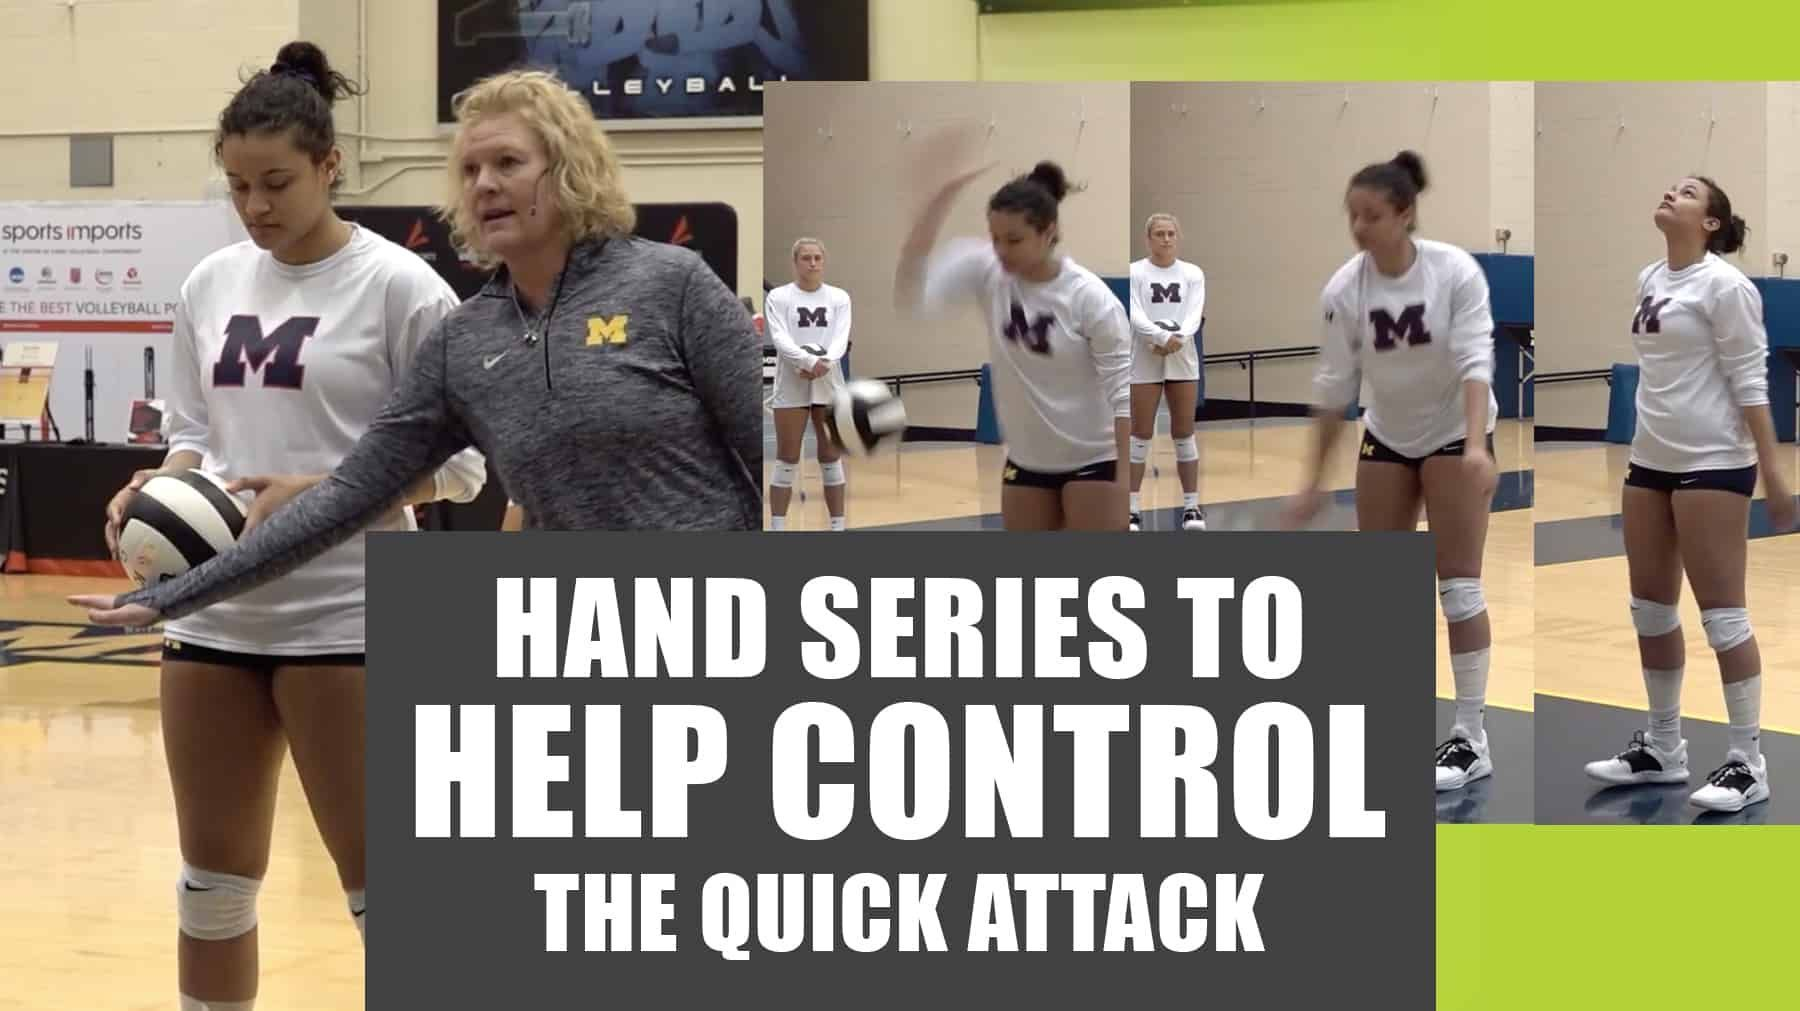 Hand Series To Develop Hitting Control Volleyball Workouts Coaching Volleyball Volleyball Training